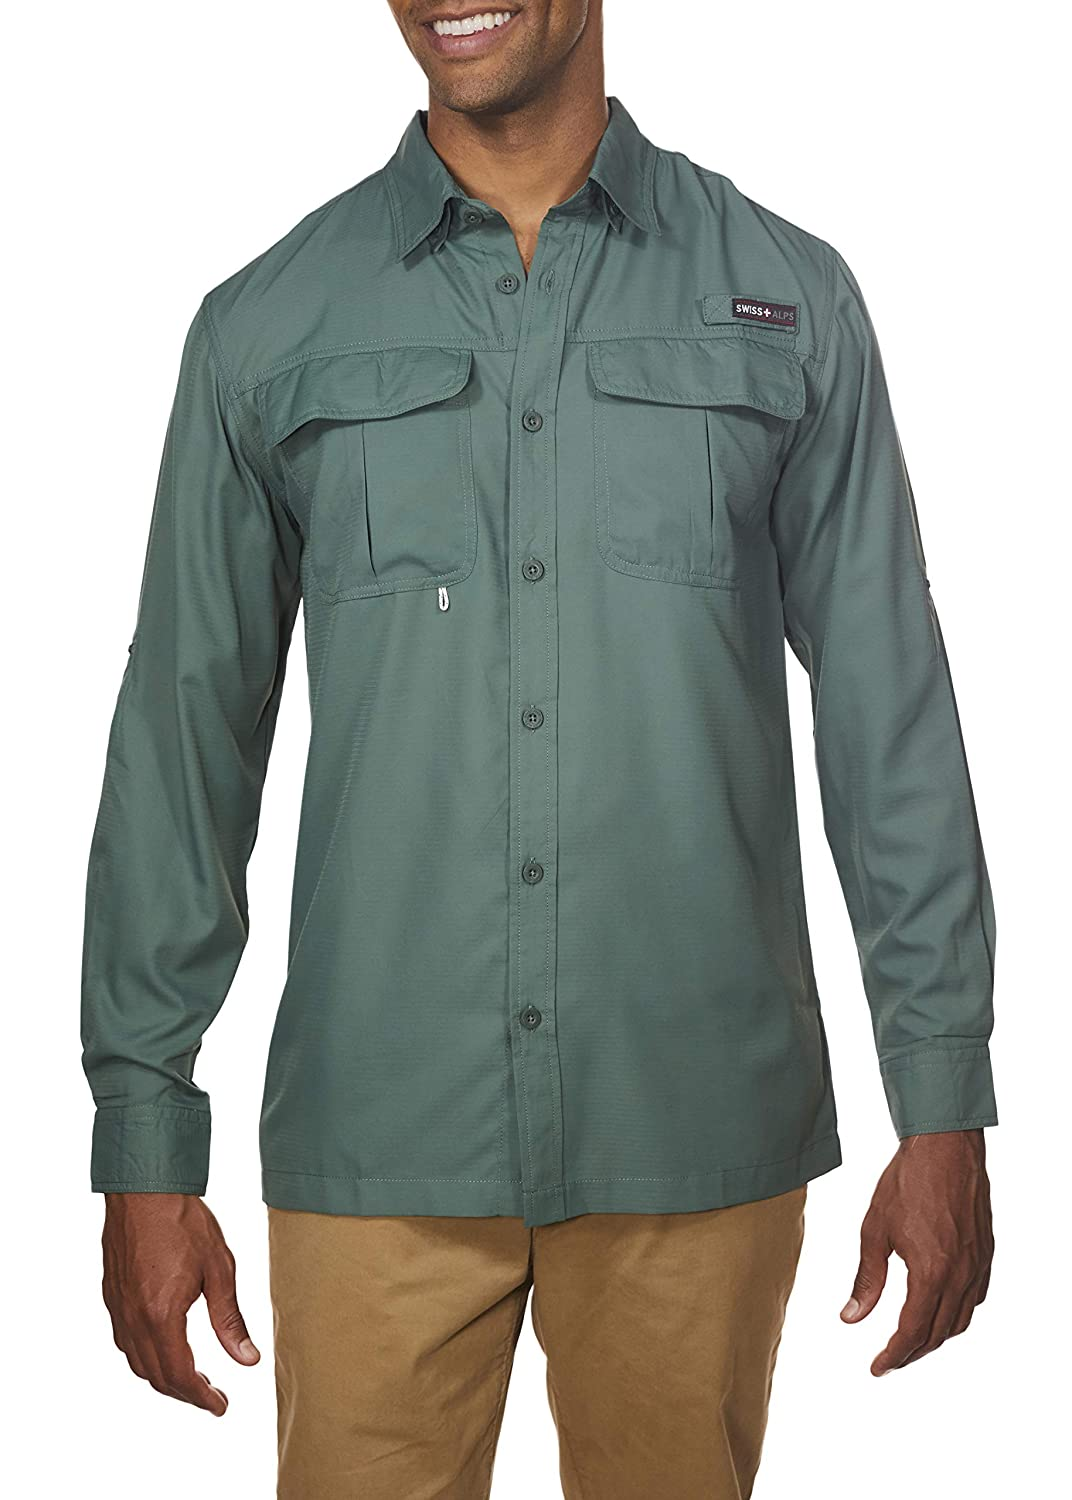 Swiss Alps Mens Long Sleeve Lightweight Breathable Outdoor Fishing Shirt